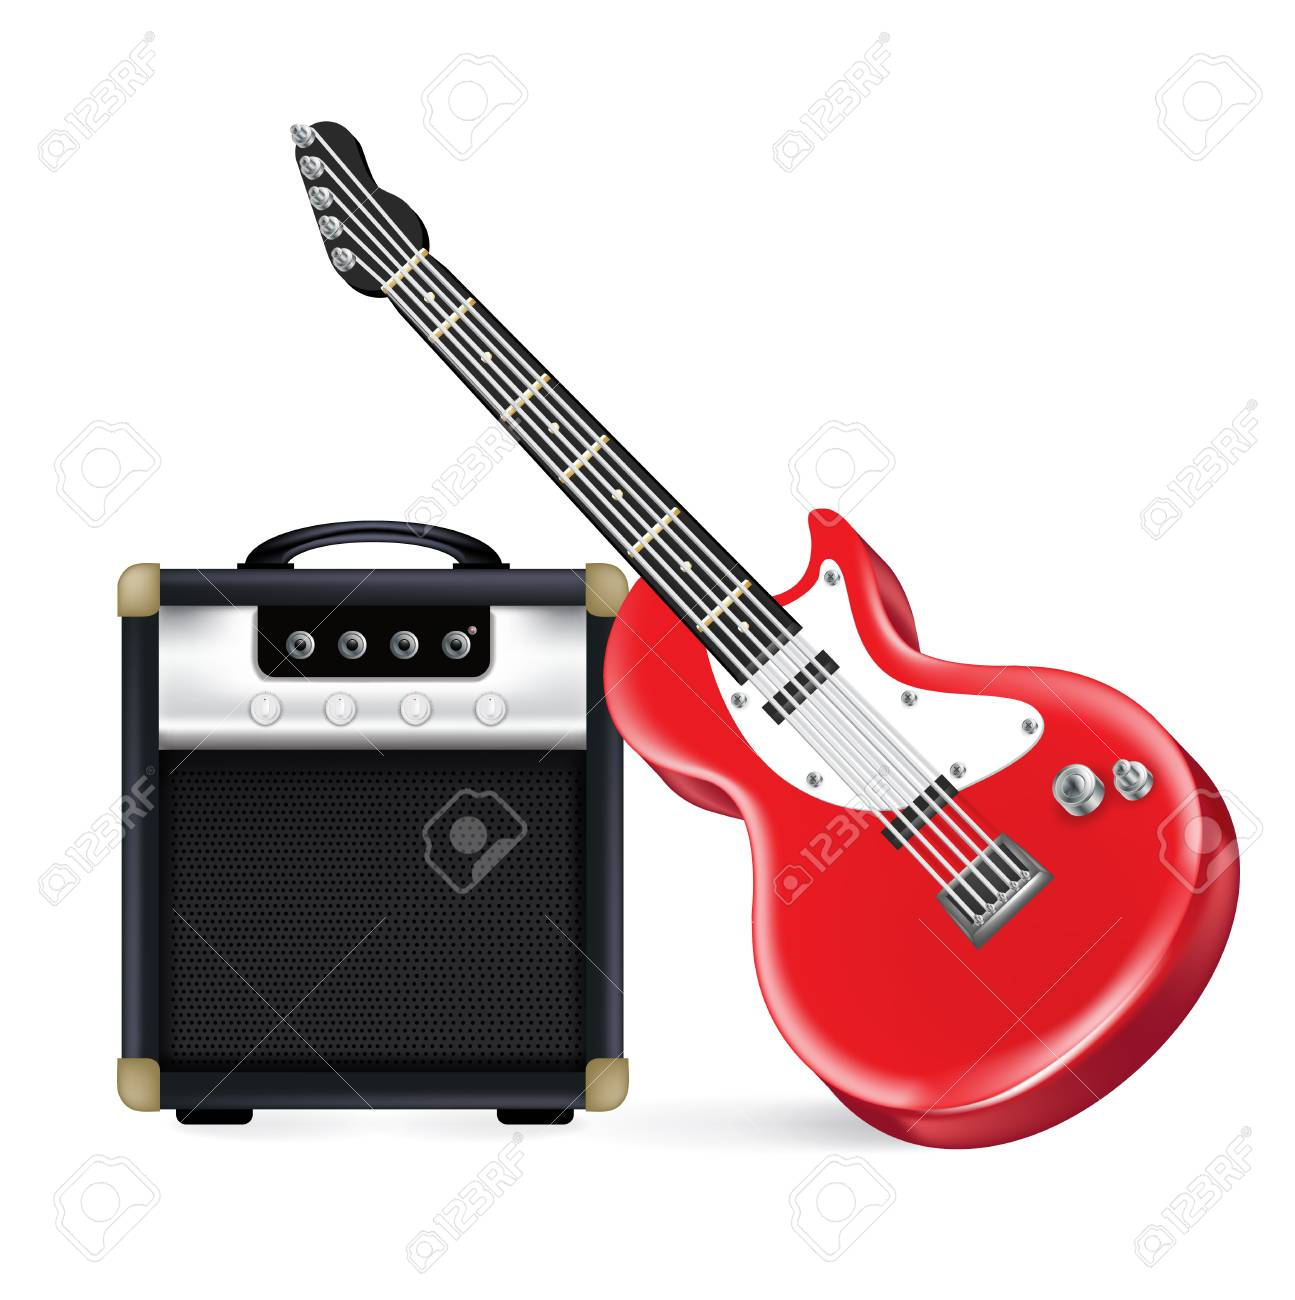 Electric Guitar And Amplifier Isolated On White Stock Vector